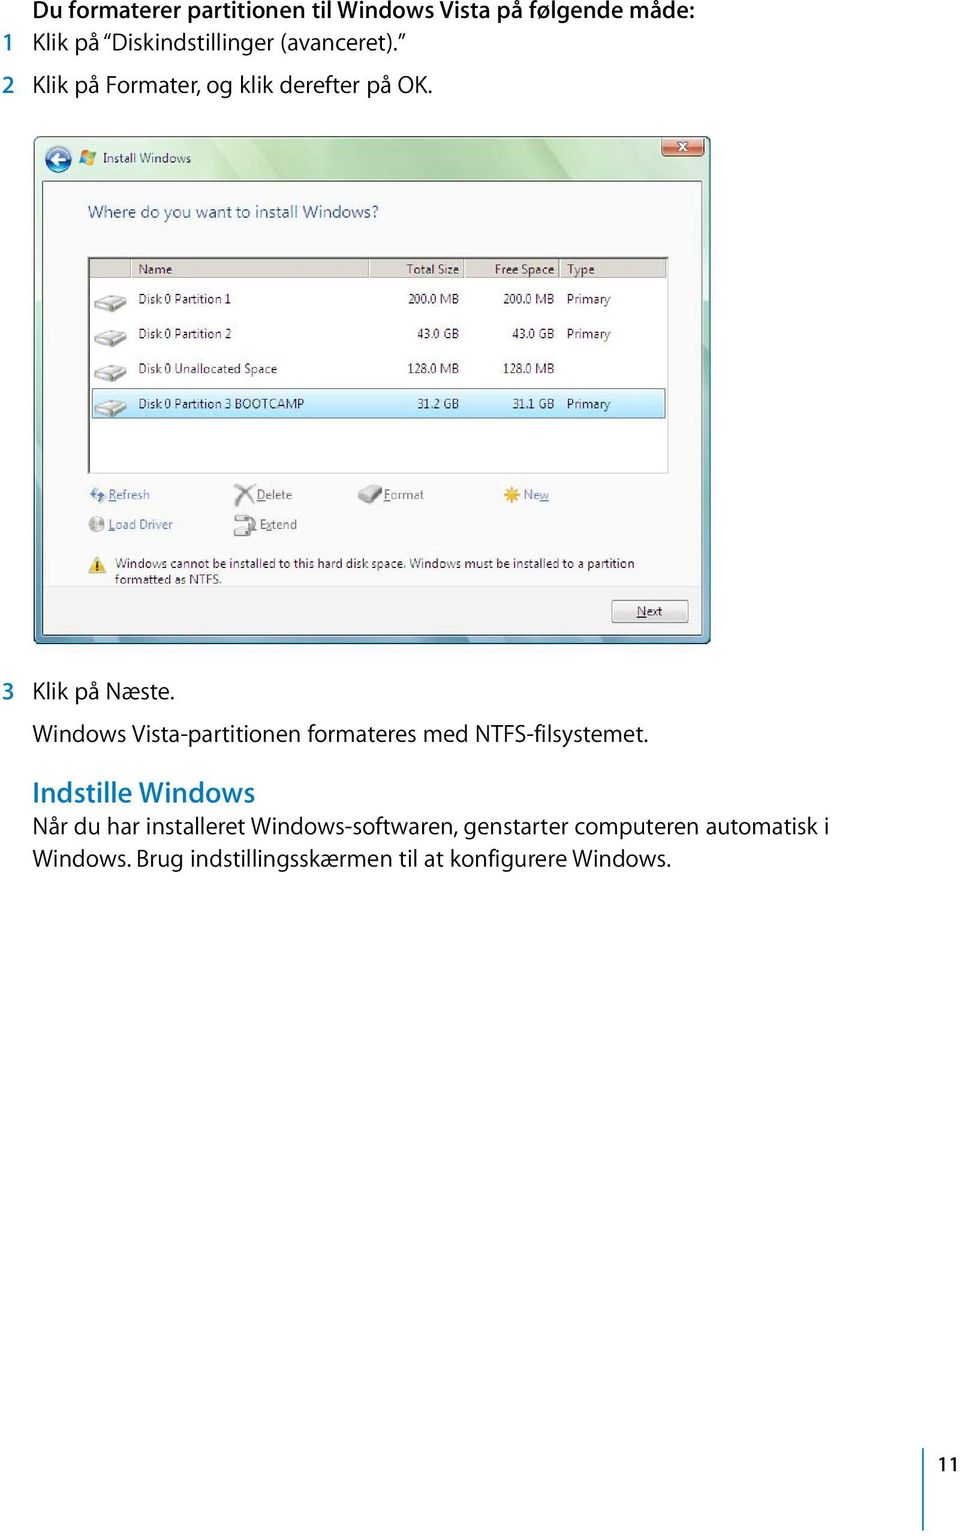 Windows Vista-partitionen formateres med NTFS-filsystemet.